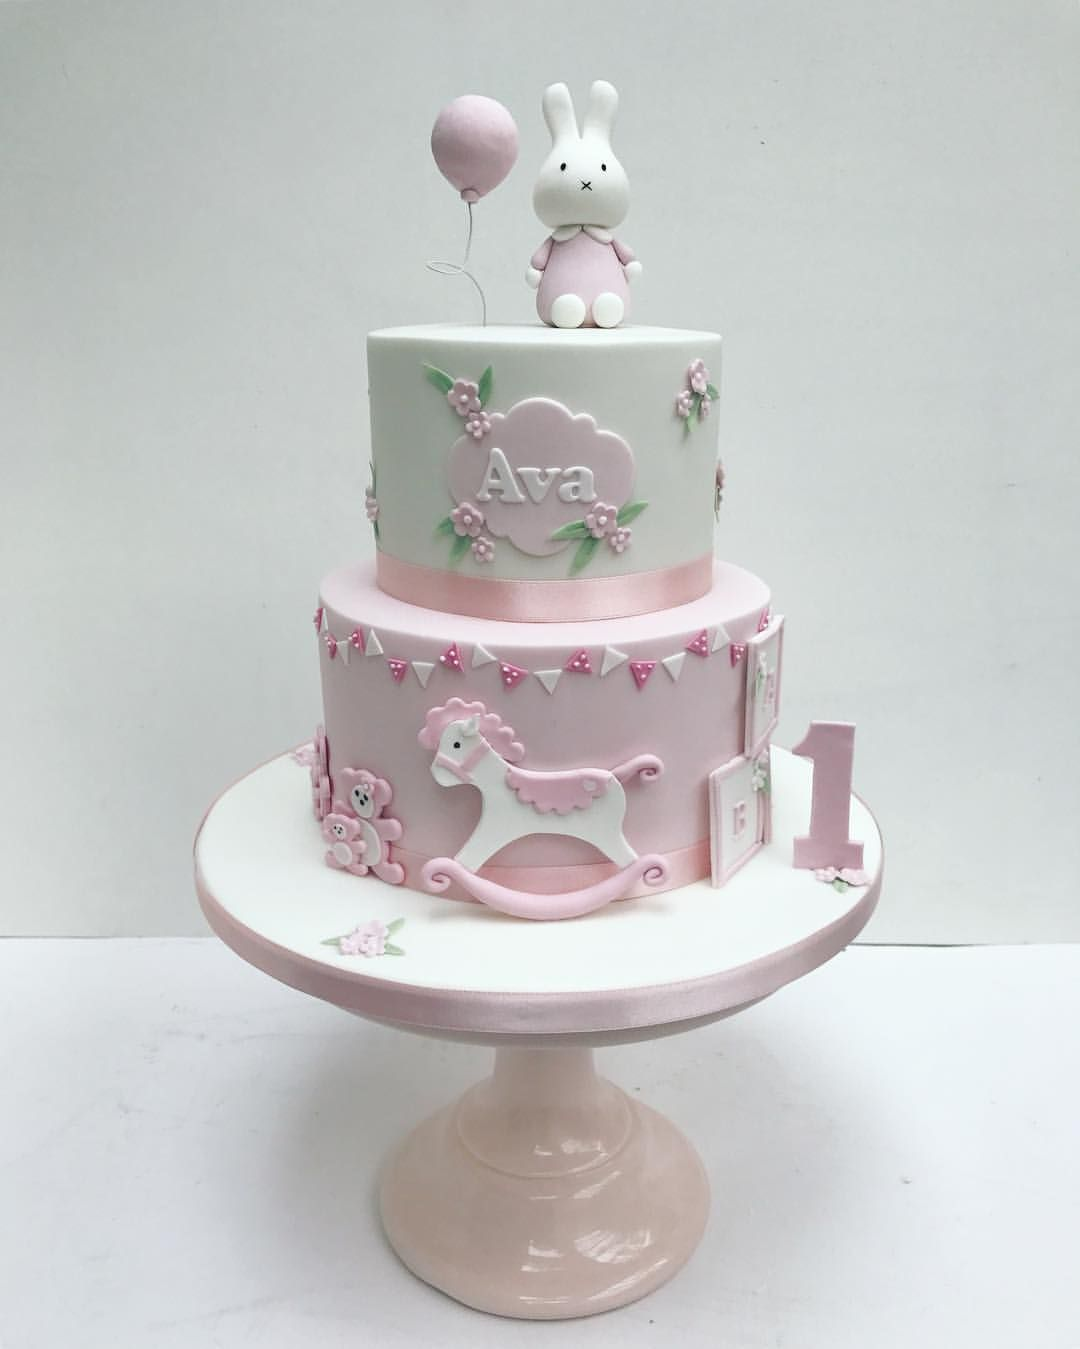 Enjoyable Miffy Pink Bunny Cake For Little Girls First Birthday By Sweet Funny Birthday Cards Online Elaedamsfinfo